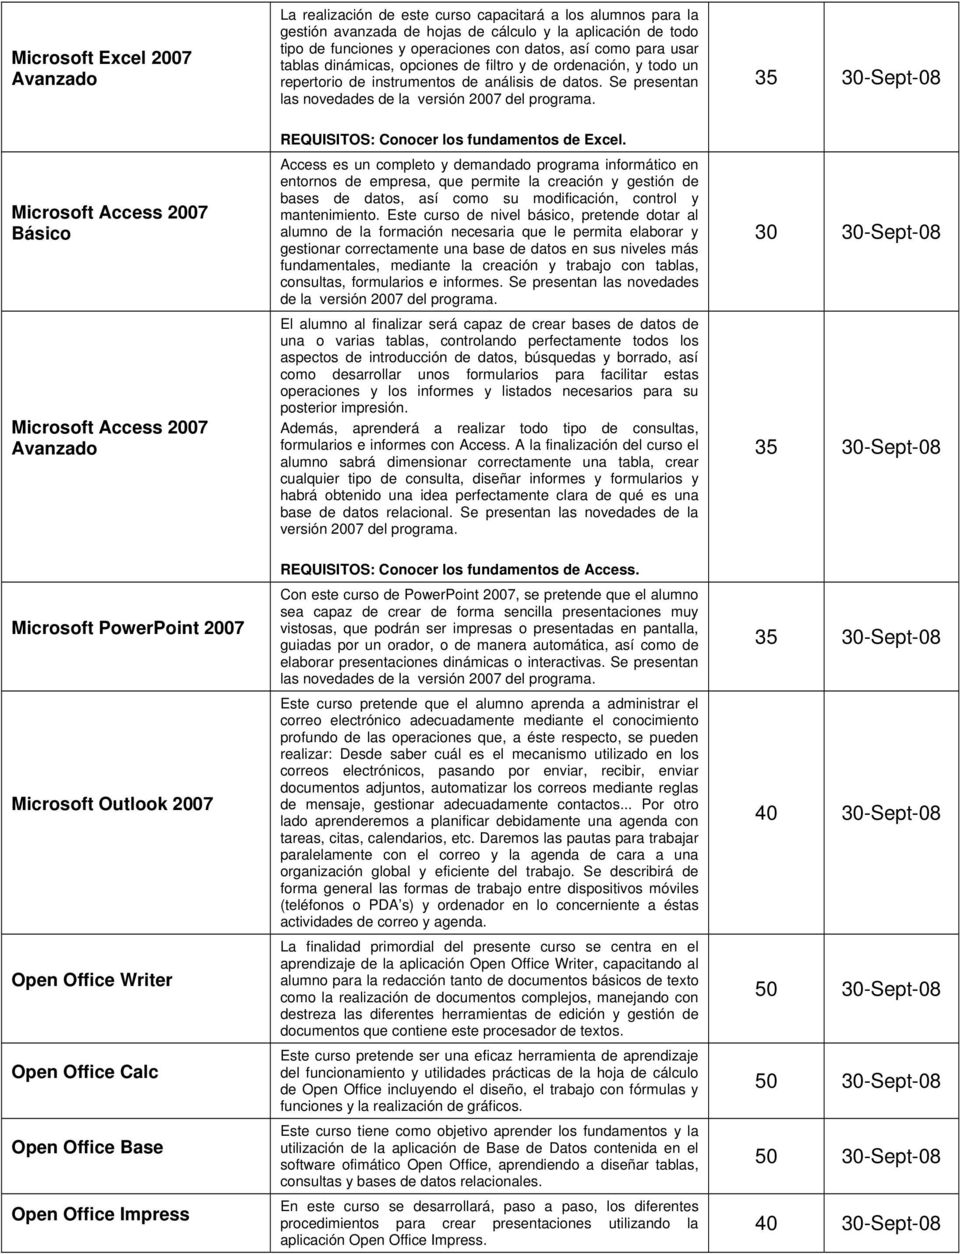 Microsoft Access 2007 Básico Microsoft Access 2007 REQUISITOS: Conocer los fundamentos de Excel.